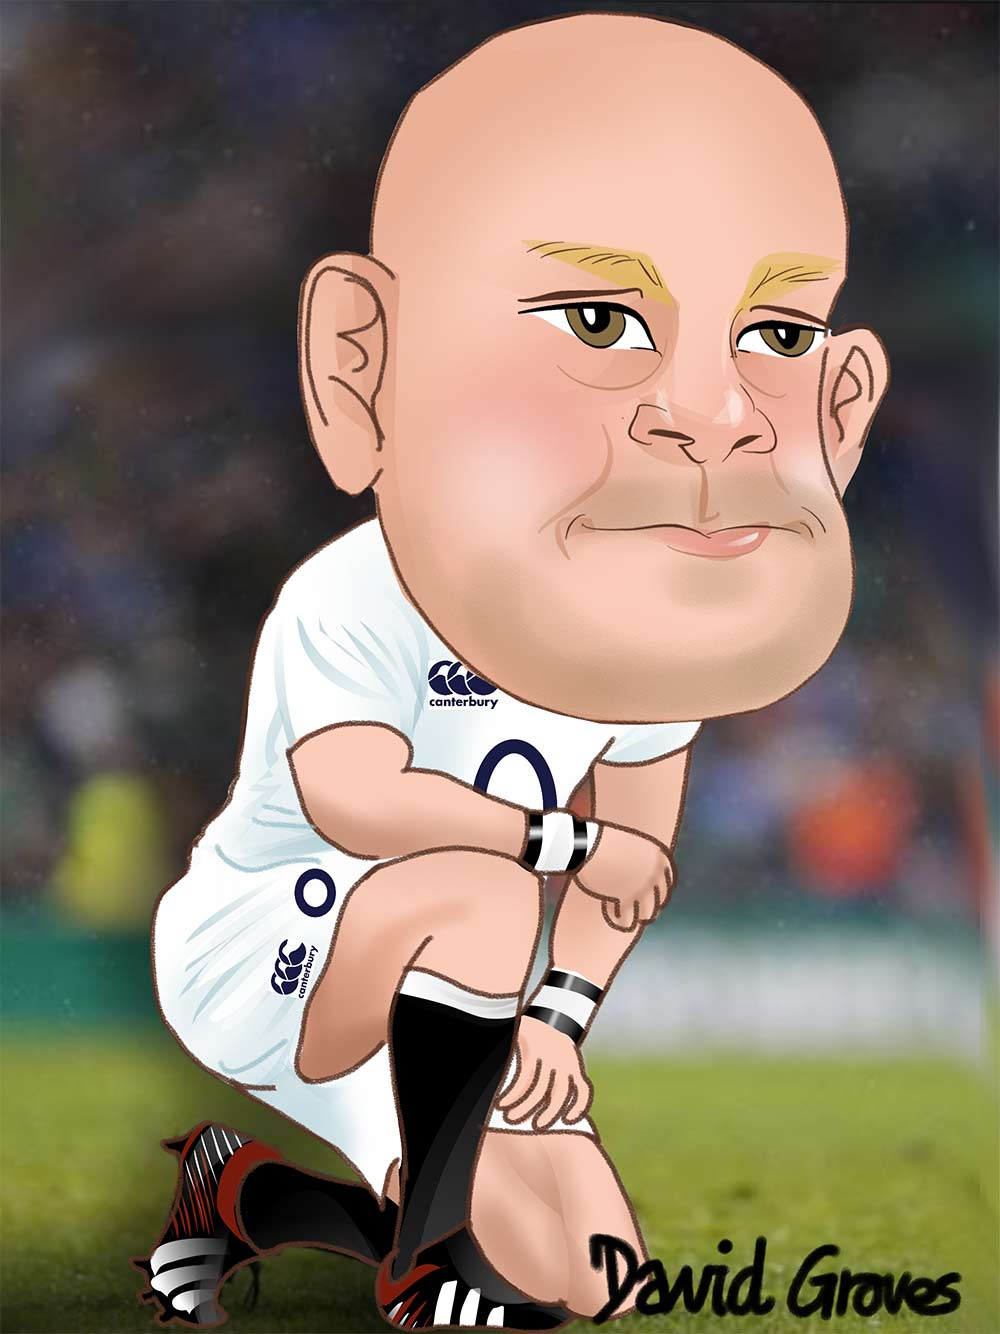 Caricature of Dan Cole in the England Rugby Team